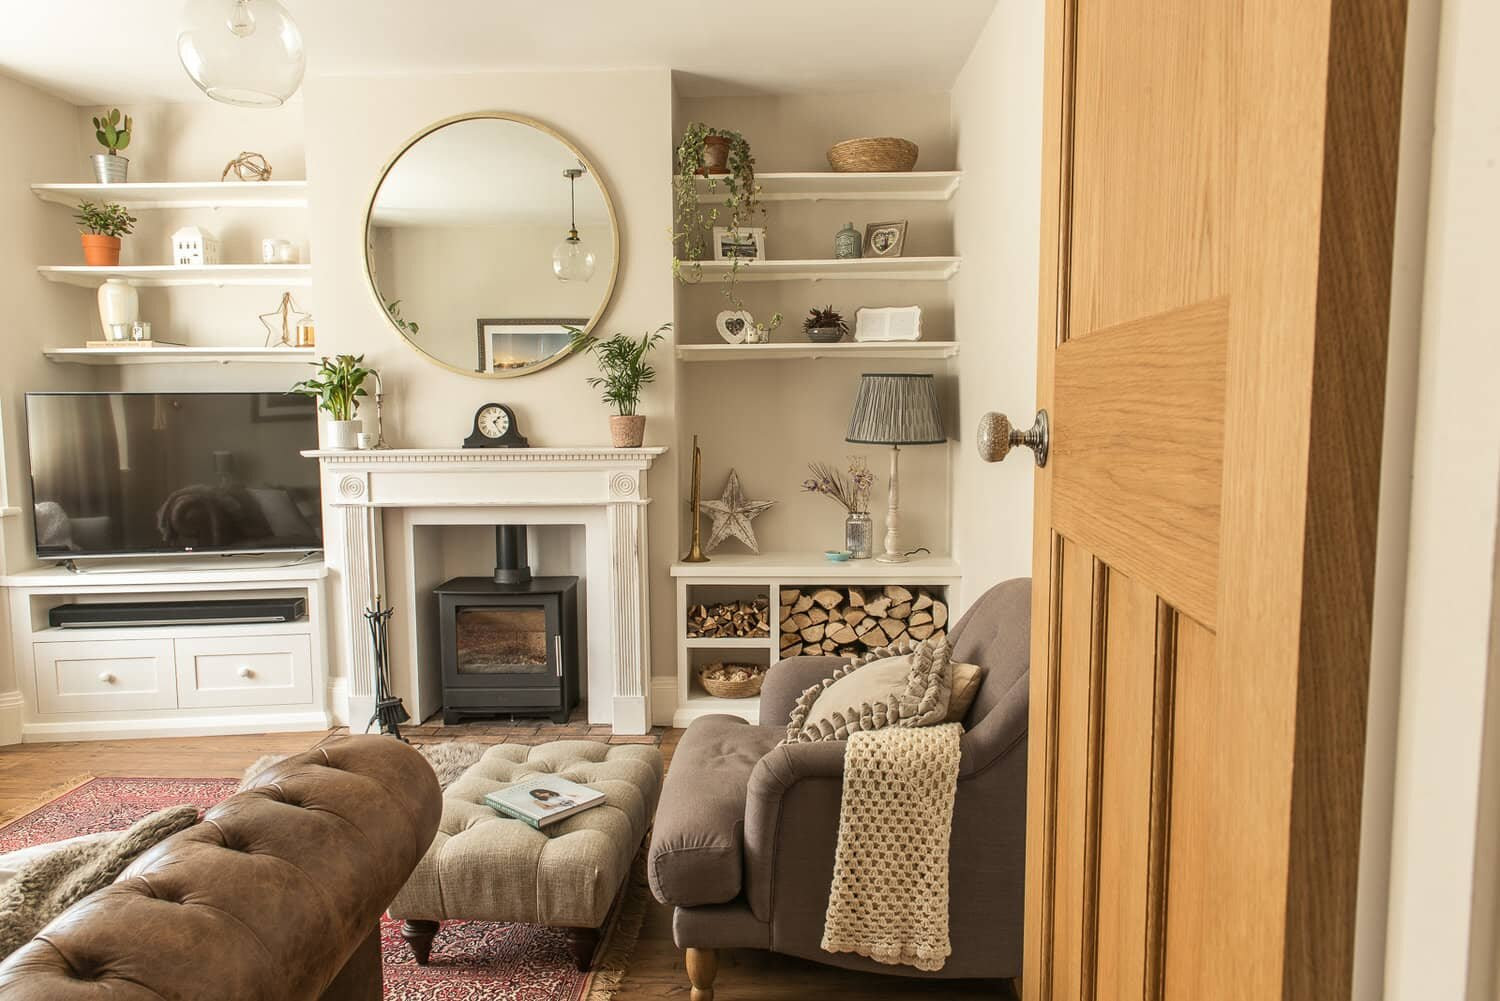 29 clever chimney breast and alcove ideas  Fifi McGee  Interiors